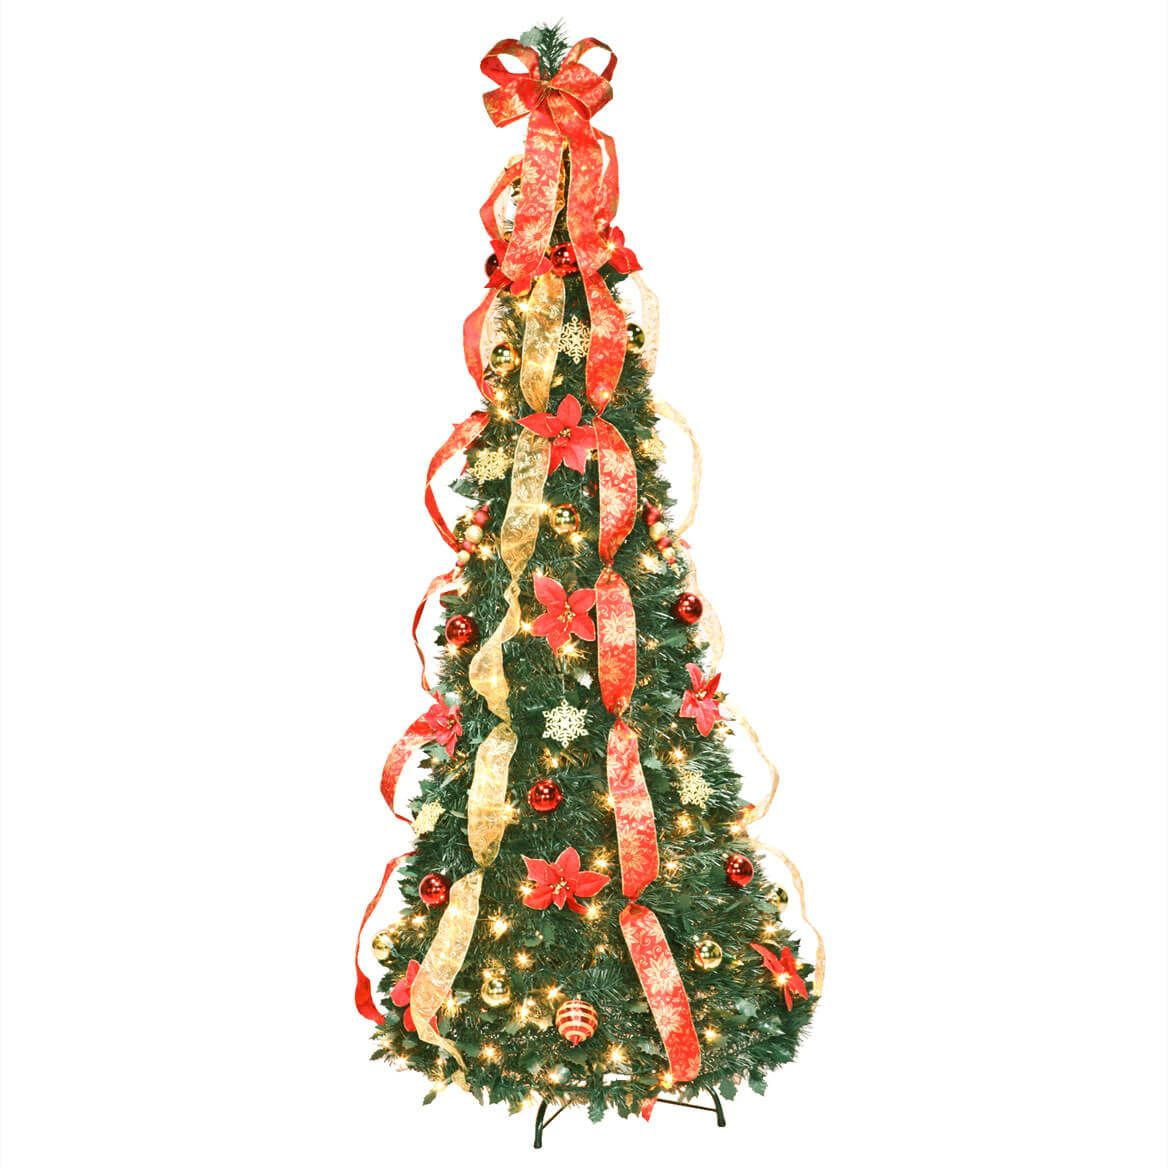 6' Red Poinsettia Pull-Up Tree by Holiday Peak™     XL-356297